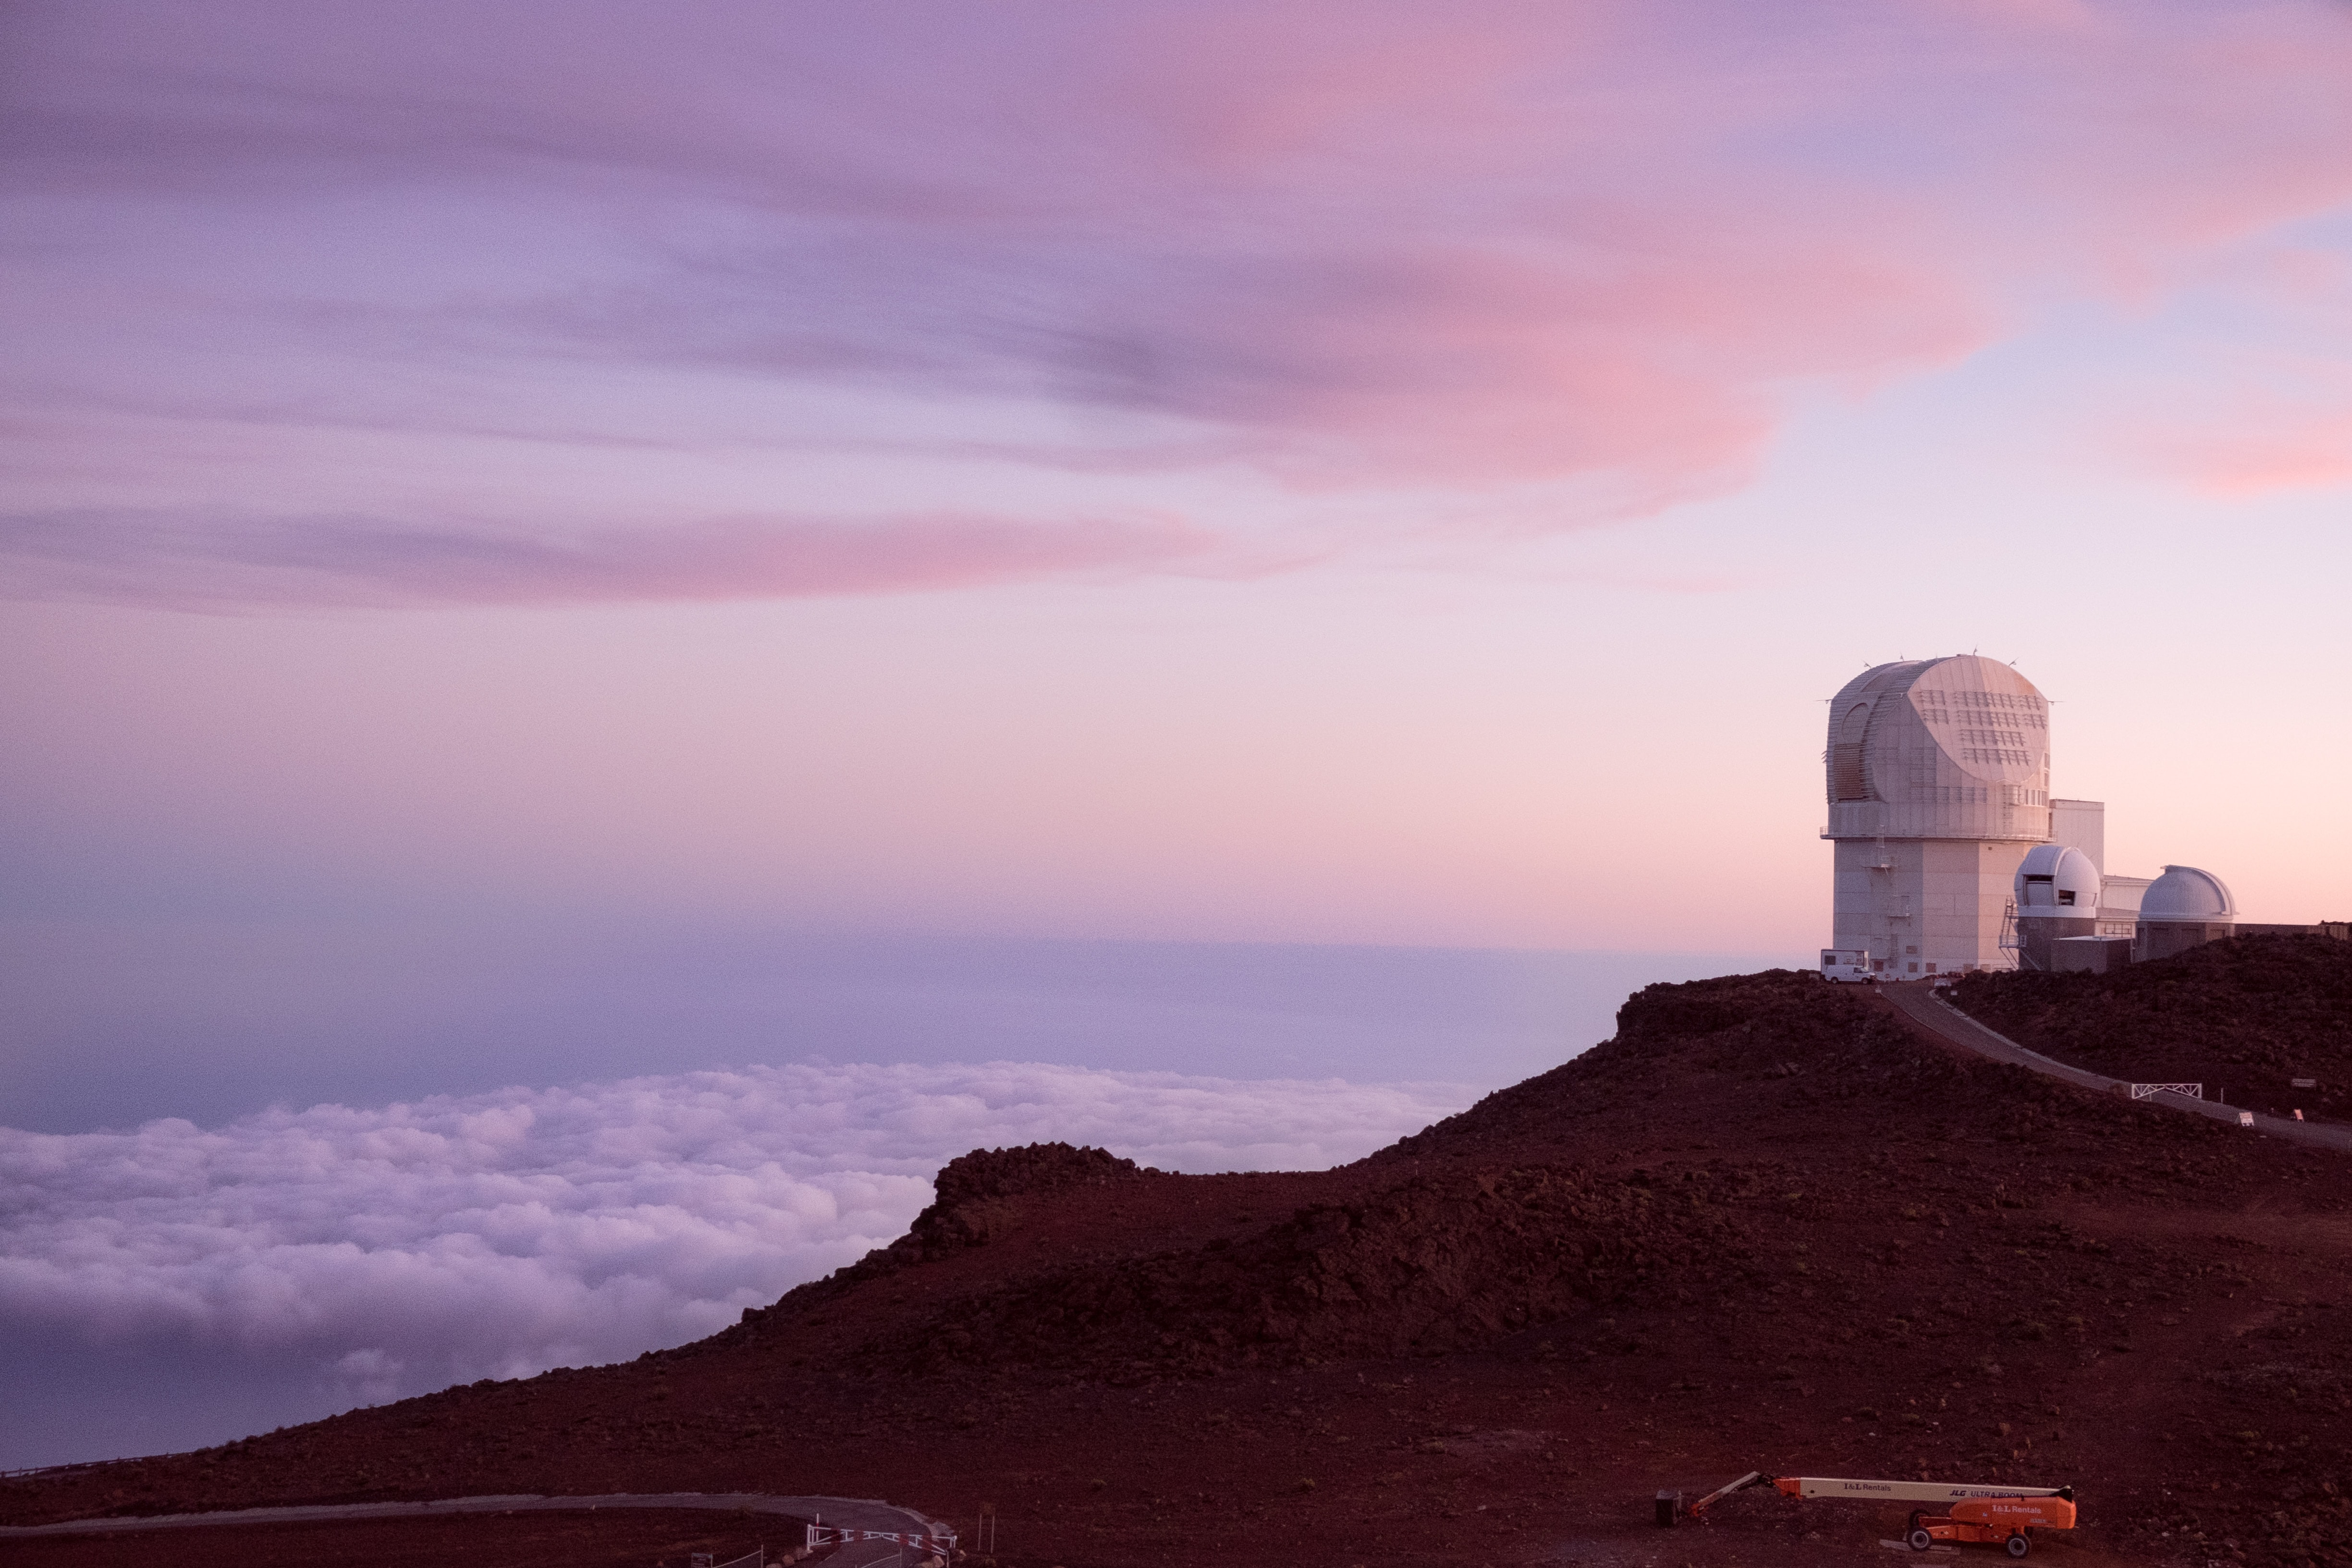 Observatory above the clouds atop Haleakala Crater, Maui during a pastel sunset